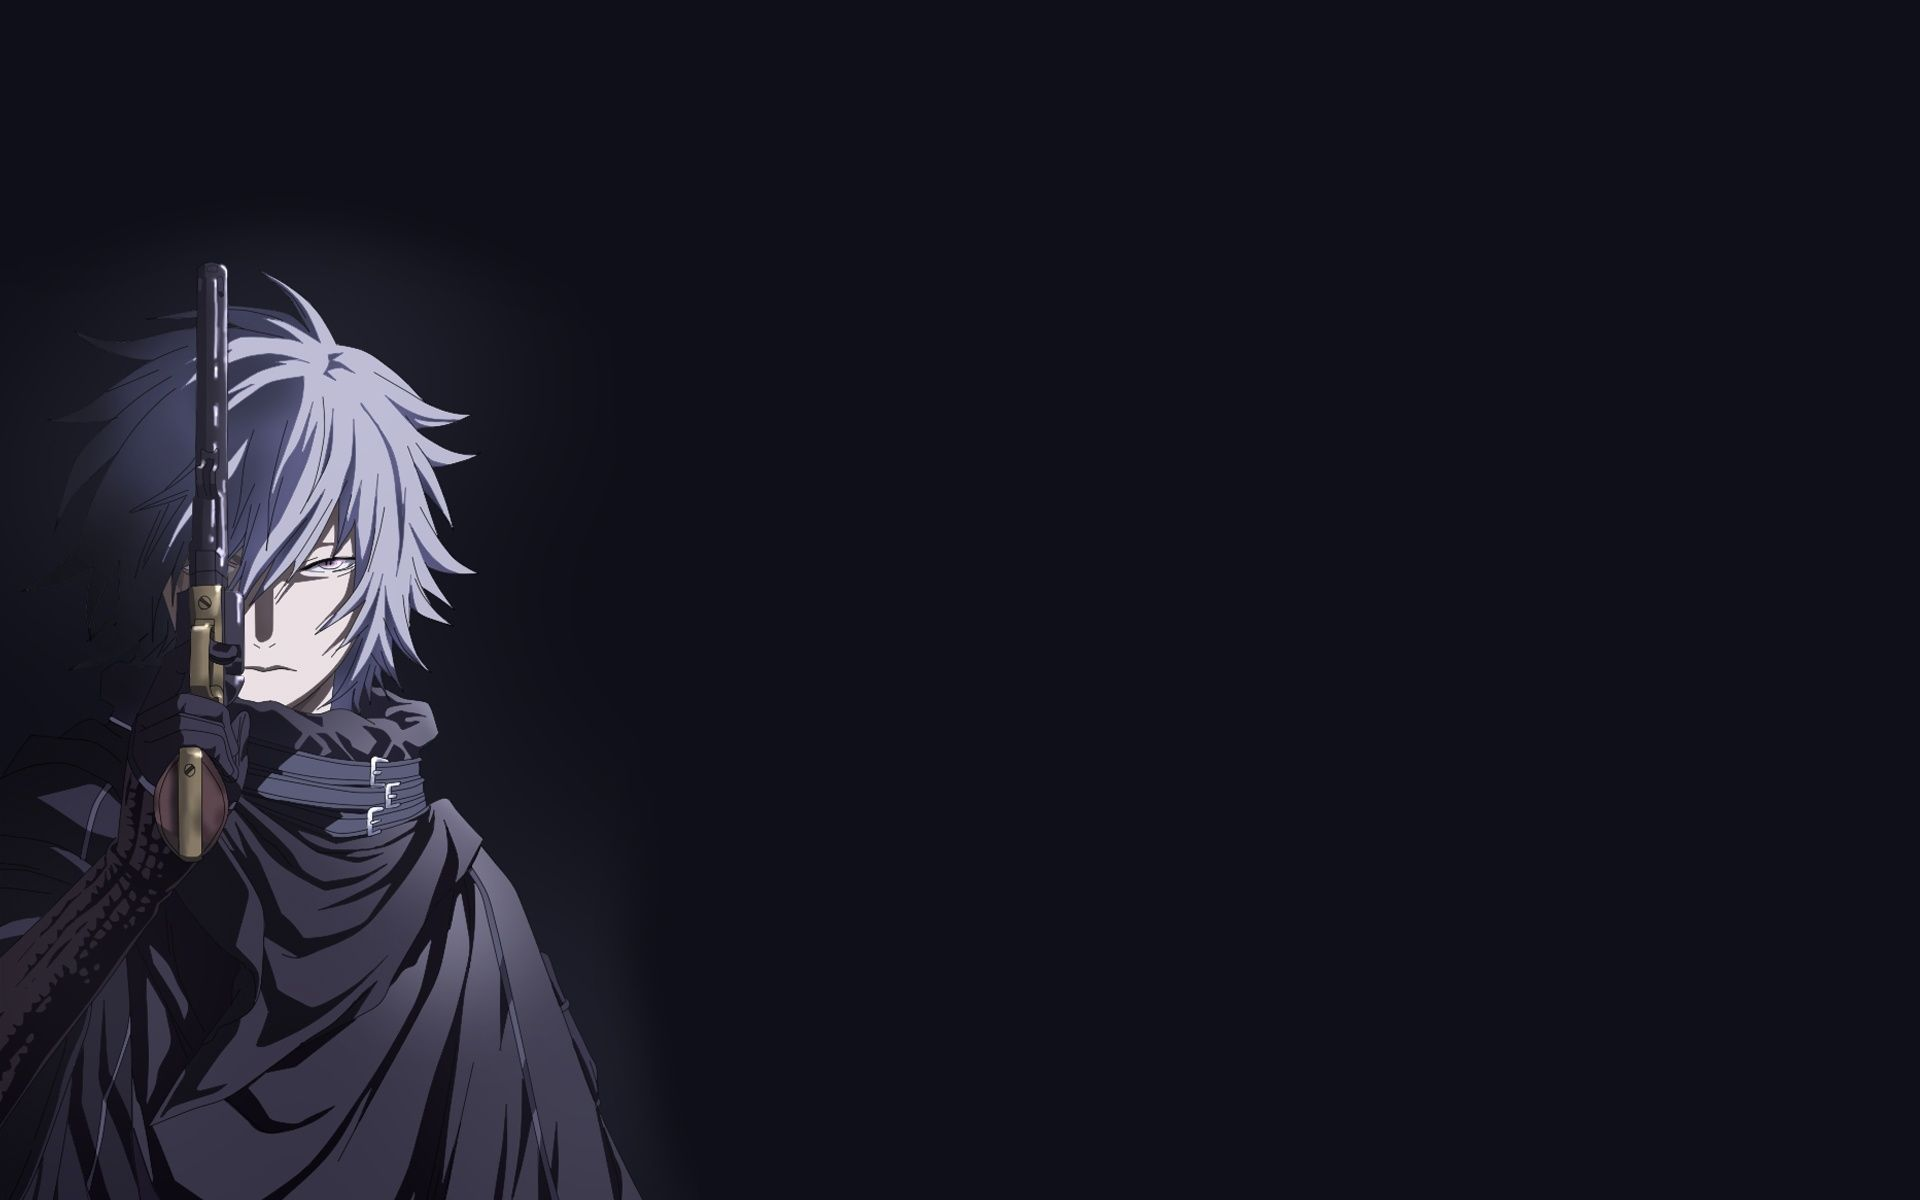 Fotos Dark Anime Wallpaper Hd Wallpapers Dark Anime